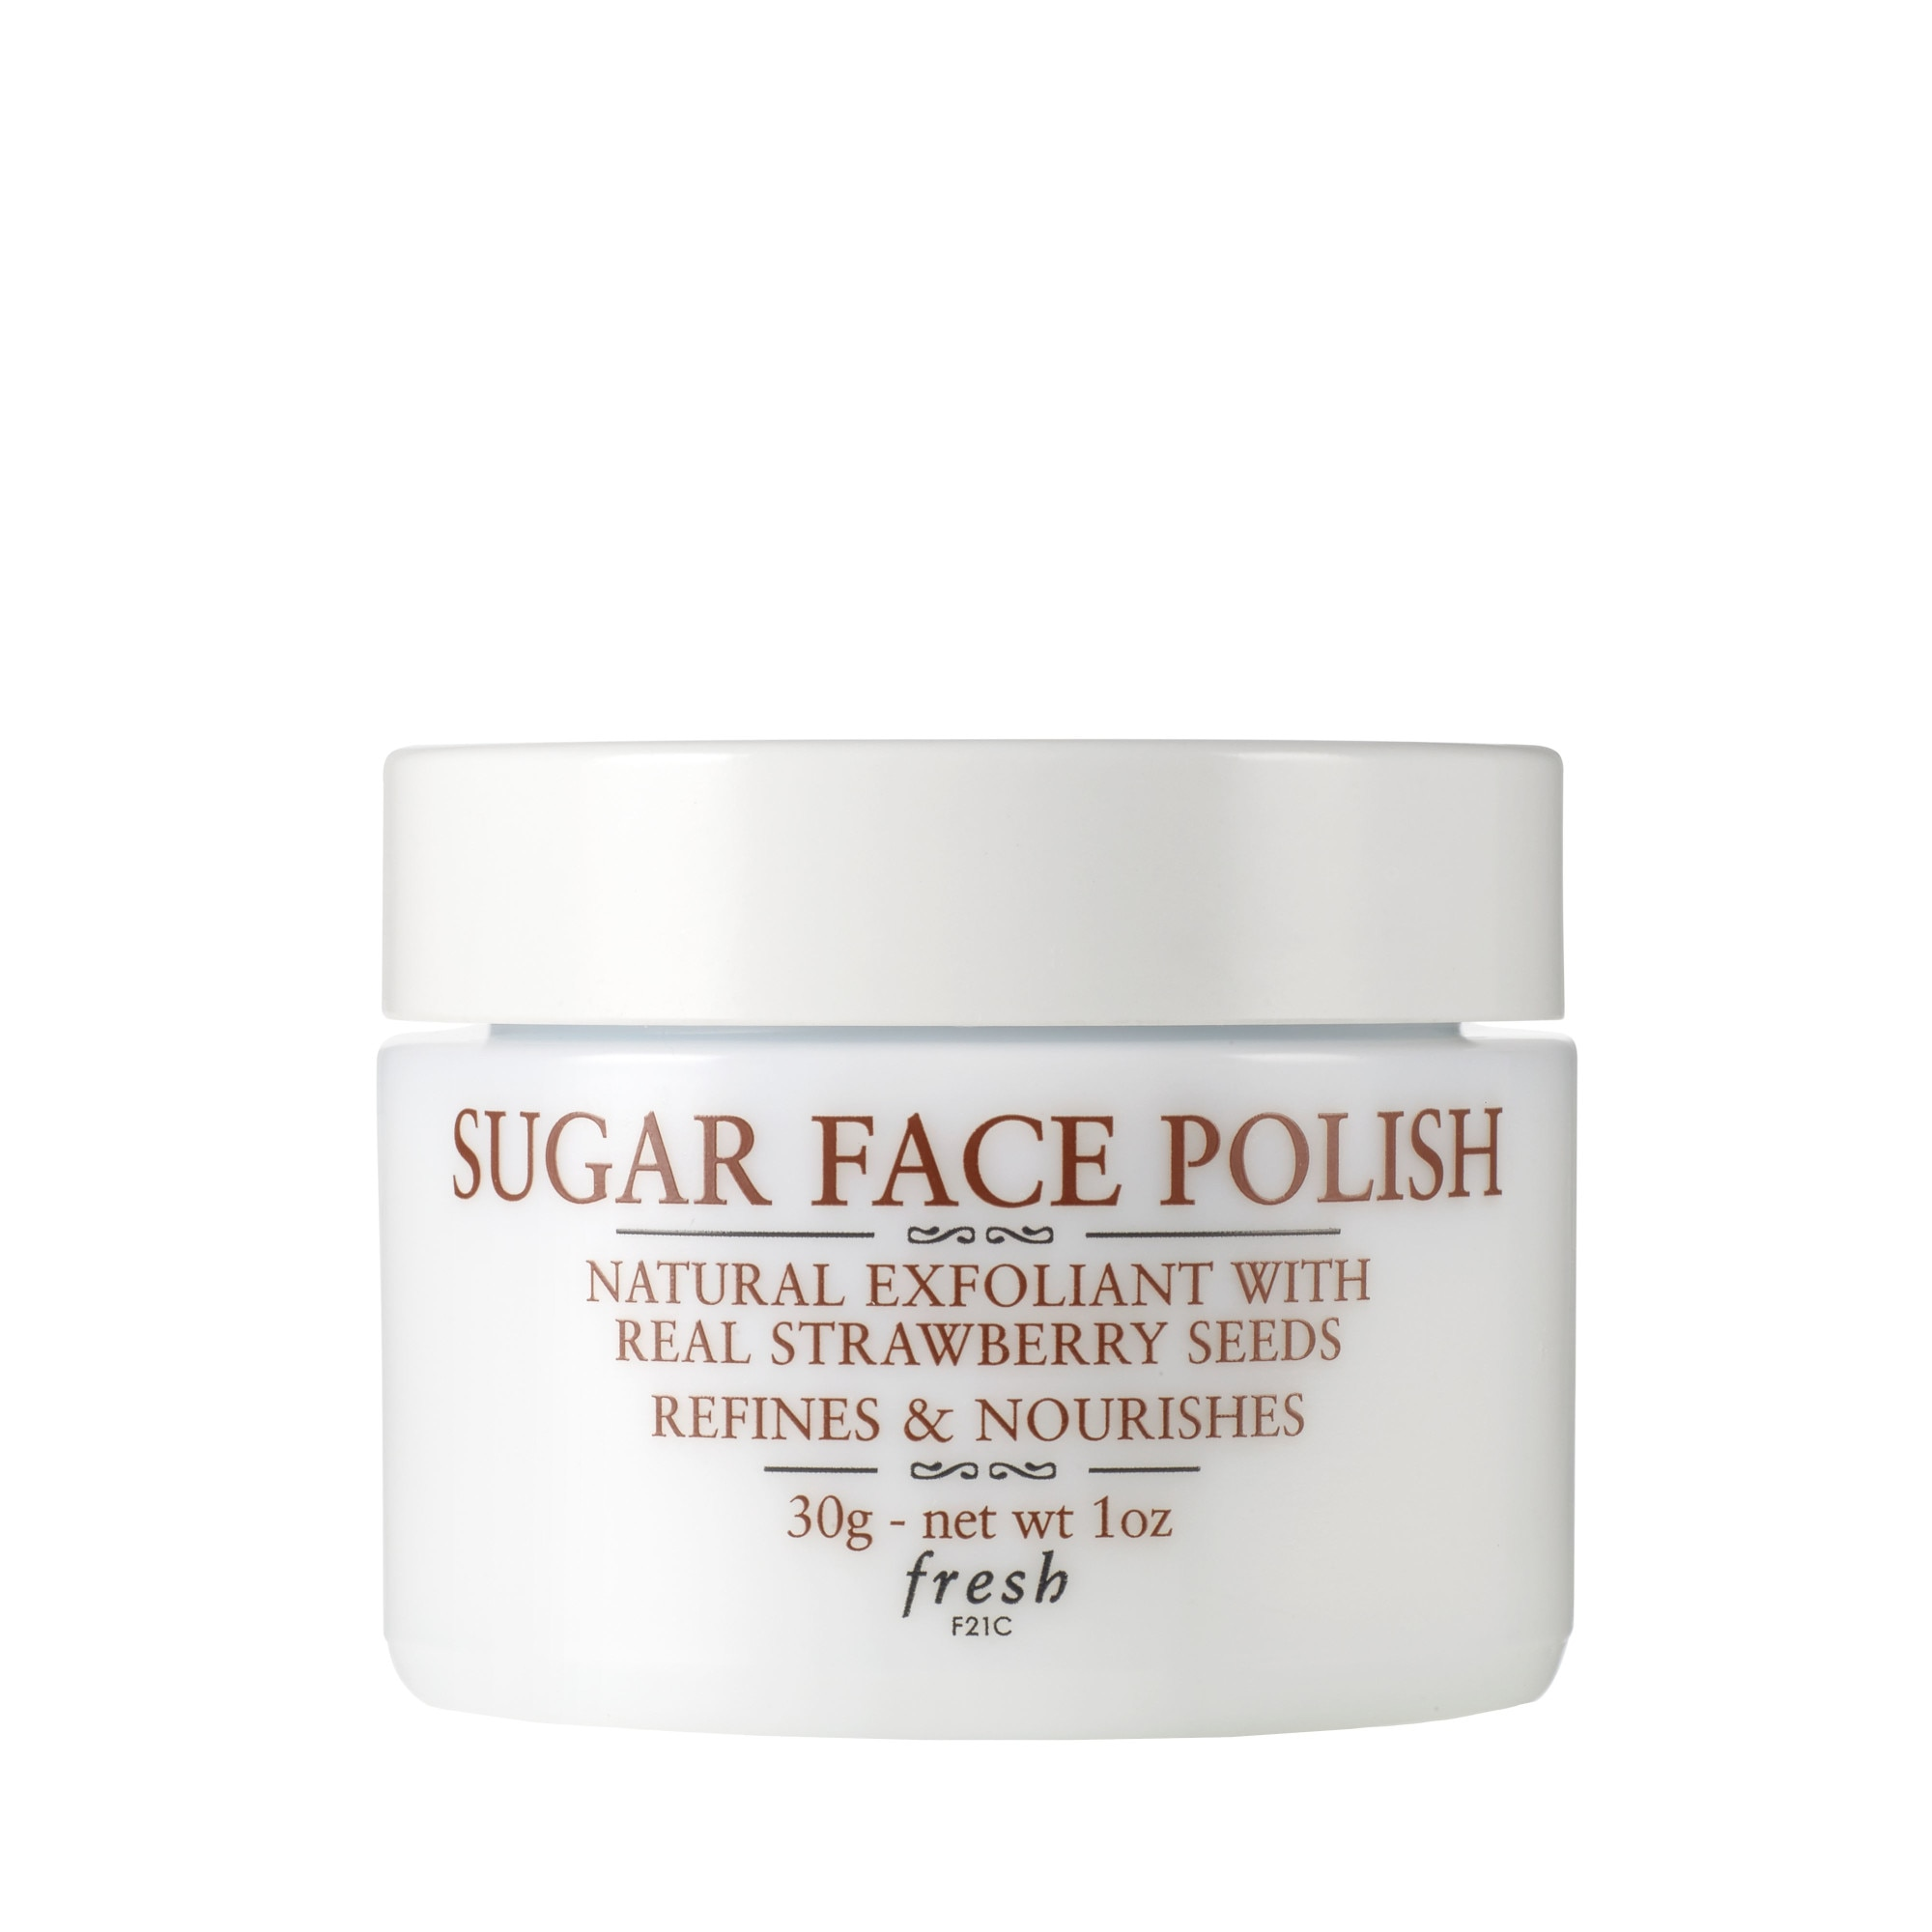 SUGAR FACE POLISH EXFOLIATOR 125GR